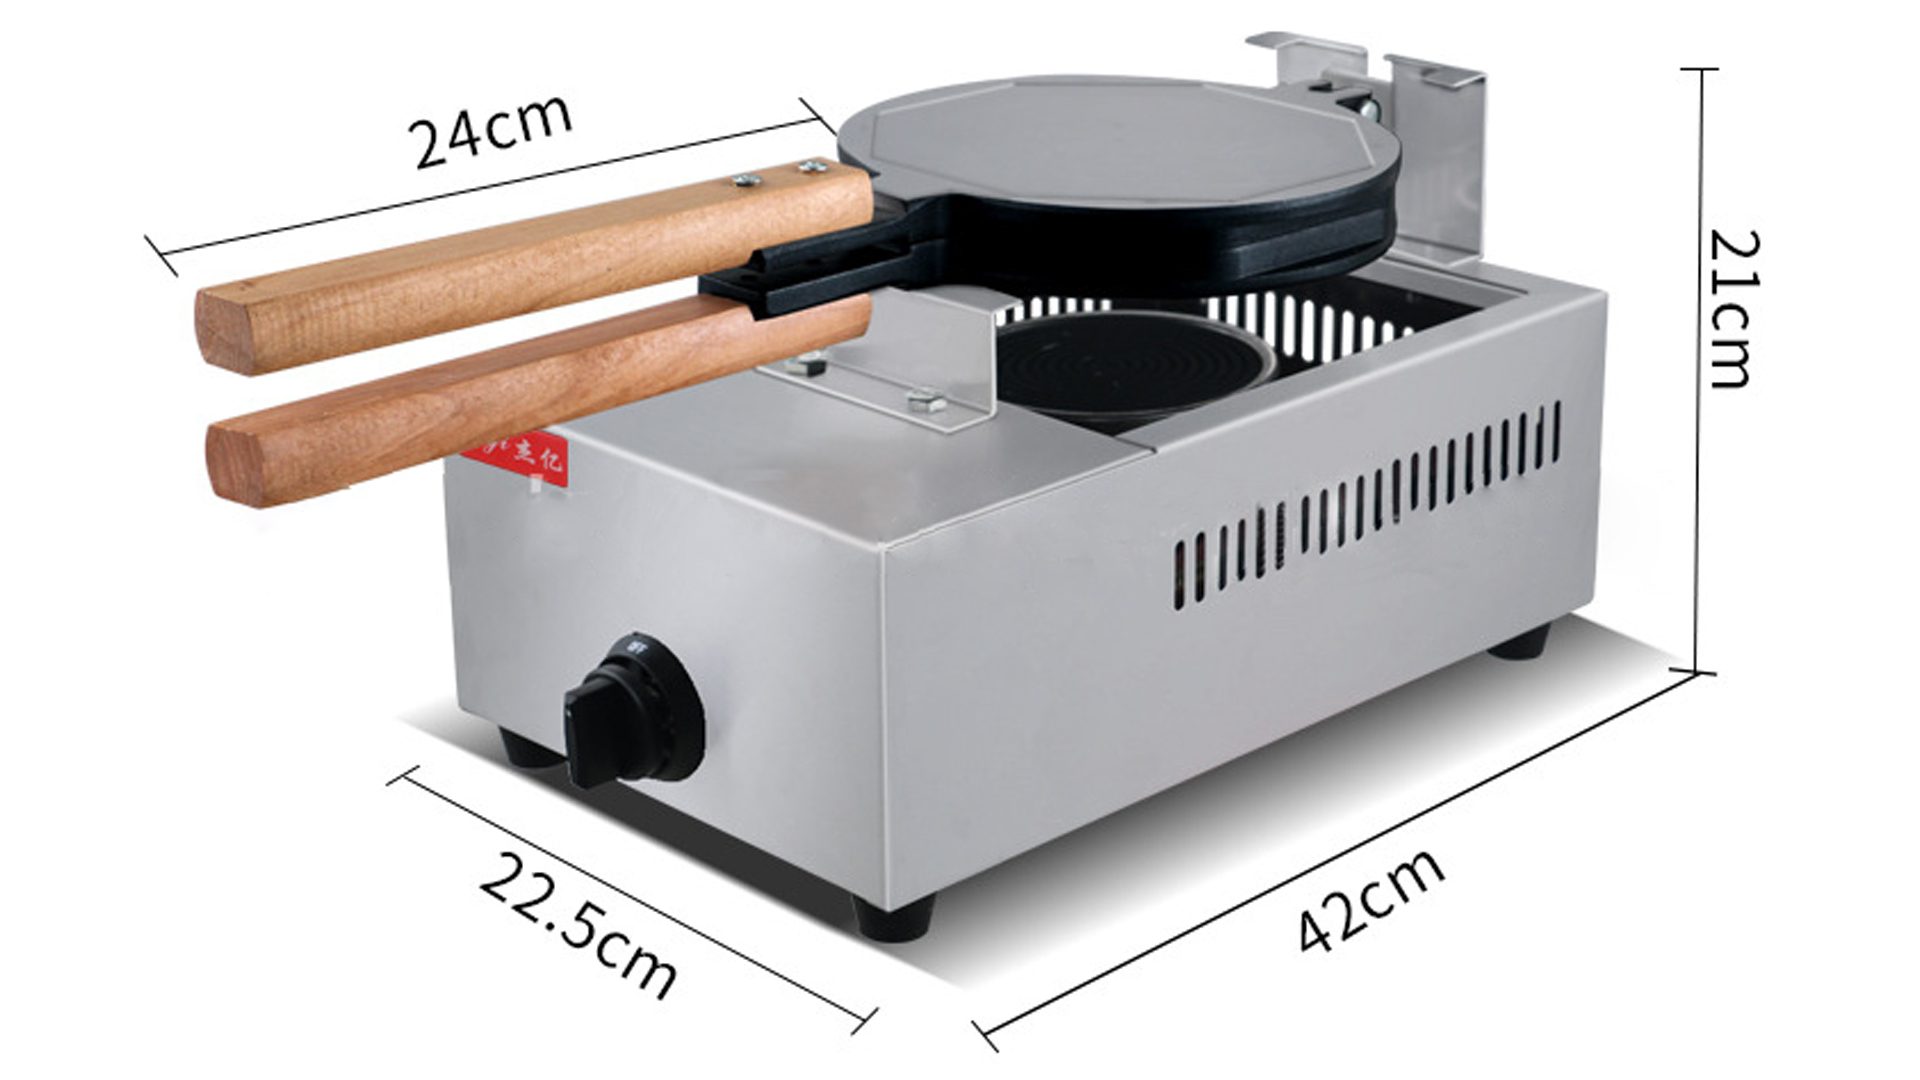 Commercial gas egg waffle maker FY-6A.R Hong Kong QQ egg waffle maker casual snack scones equipment